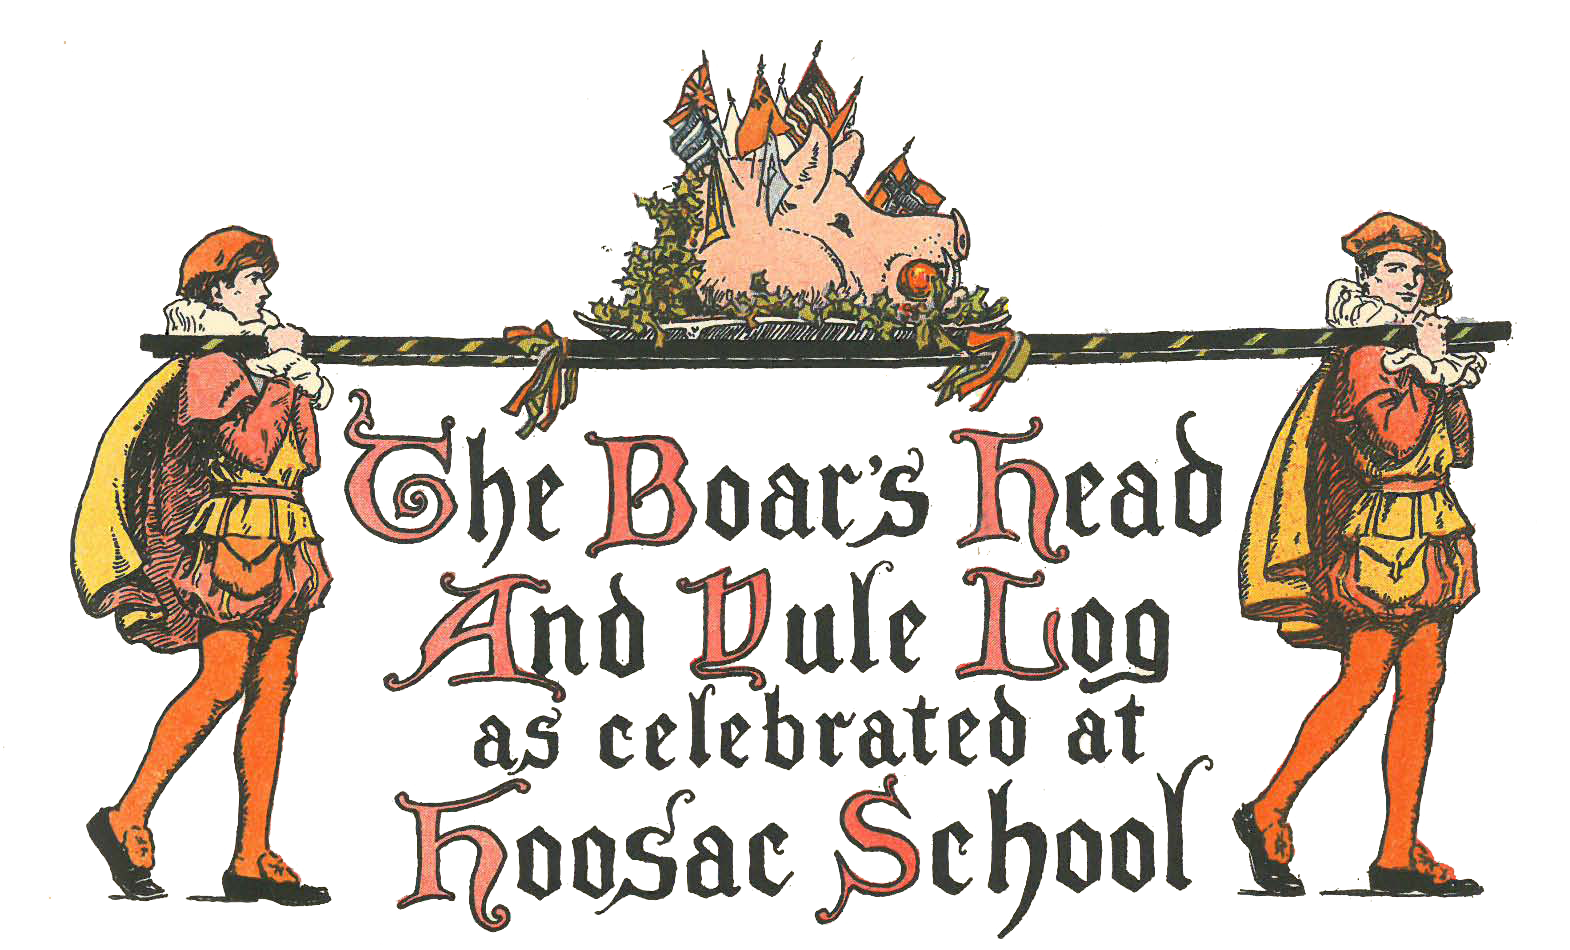 Christmas pageant clipart royalty free stock The Boar's Head and Yule Log - Hoosac royalty free stock